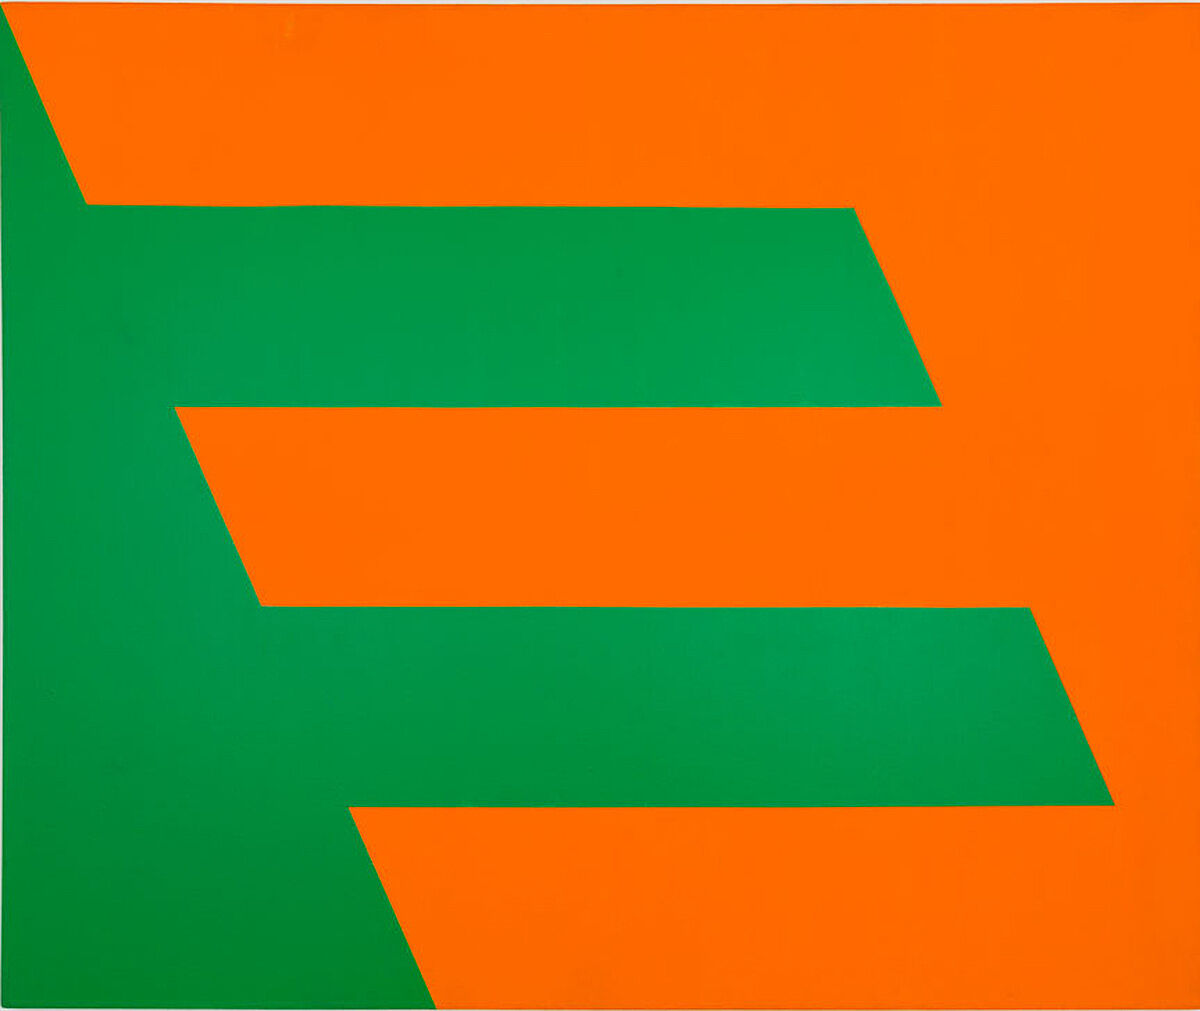 A green and orange painting.